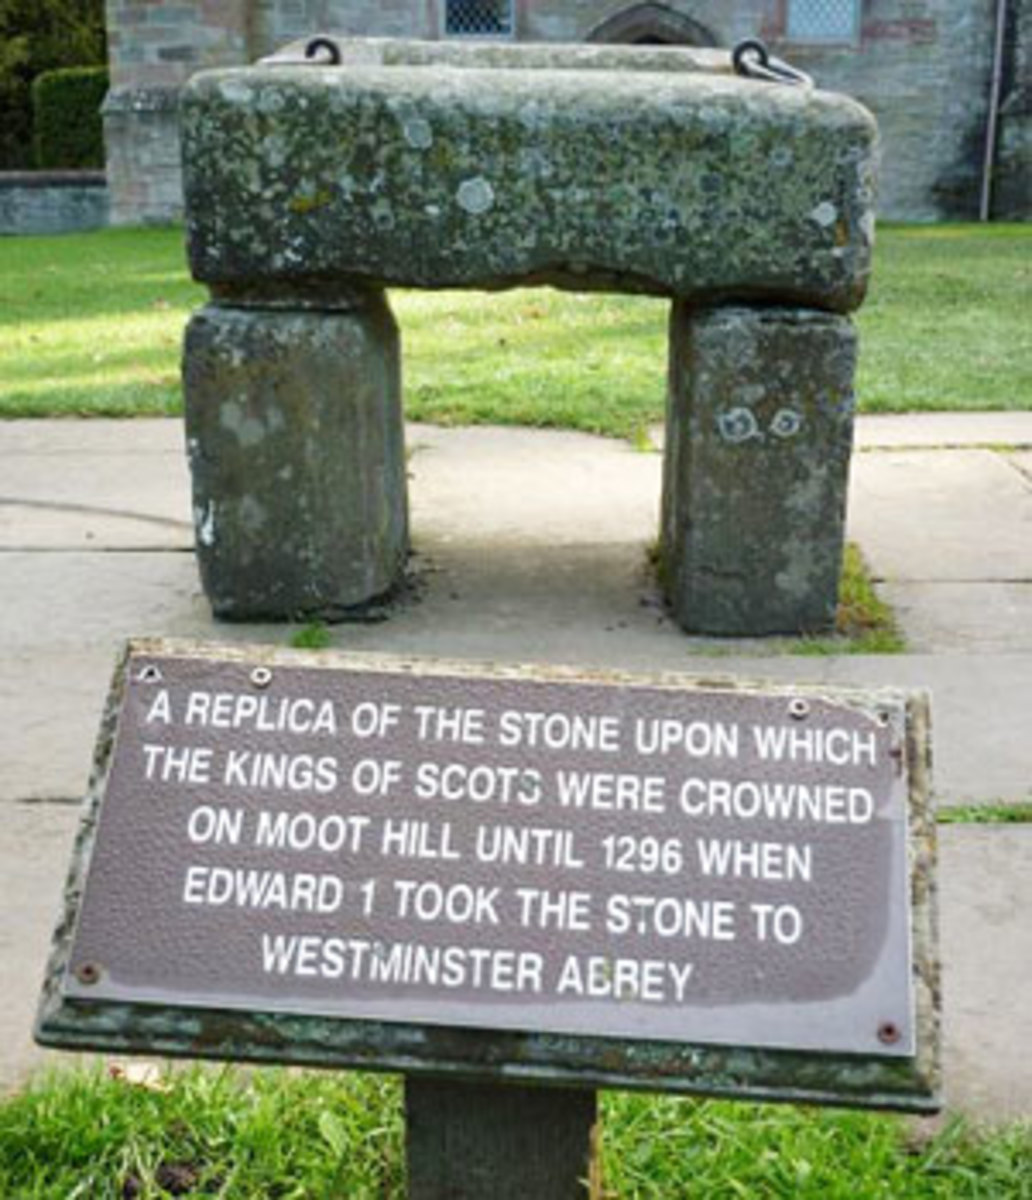 The theft of the Stone of Scone